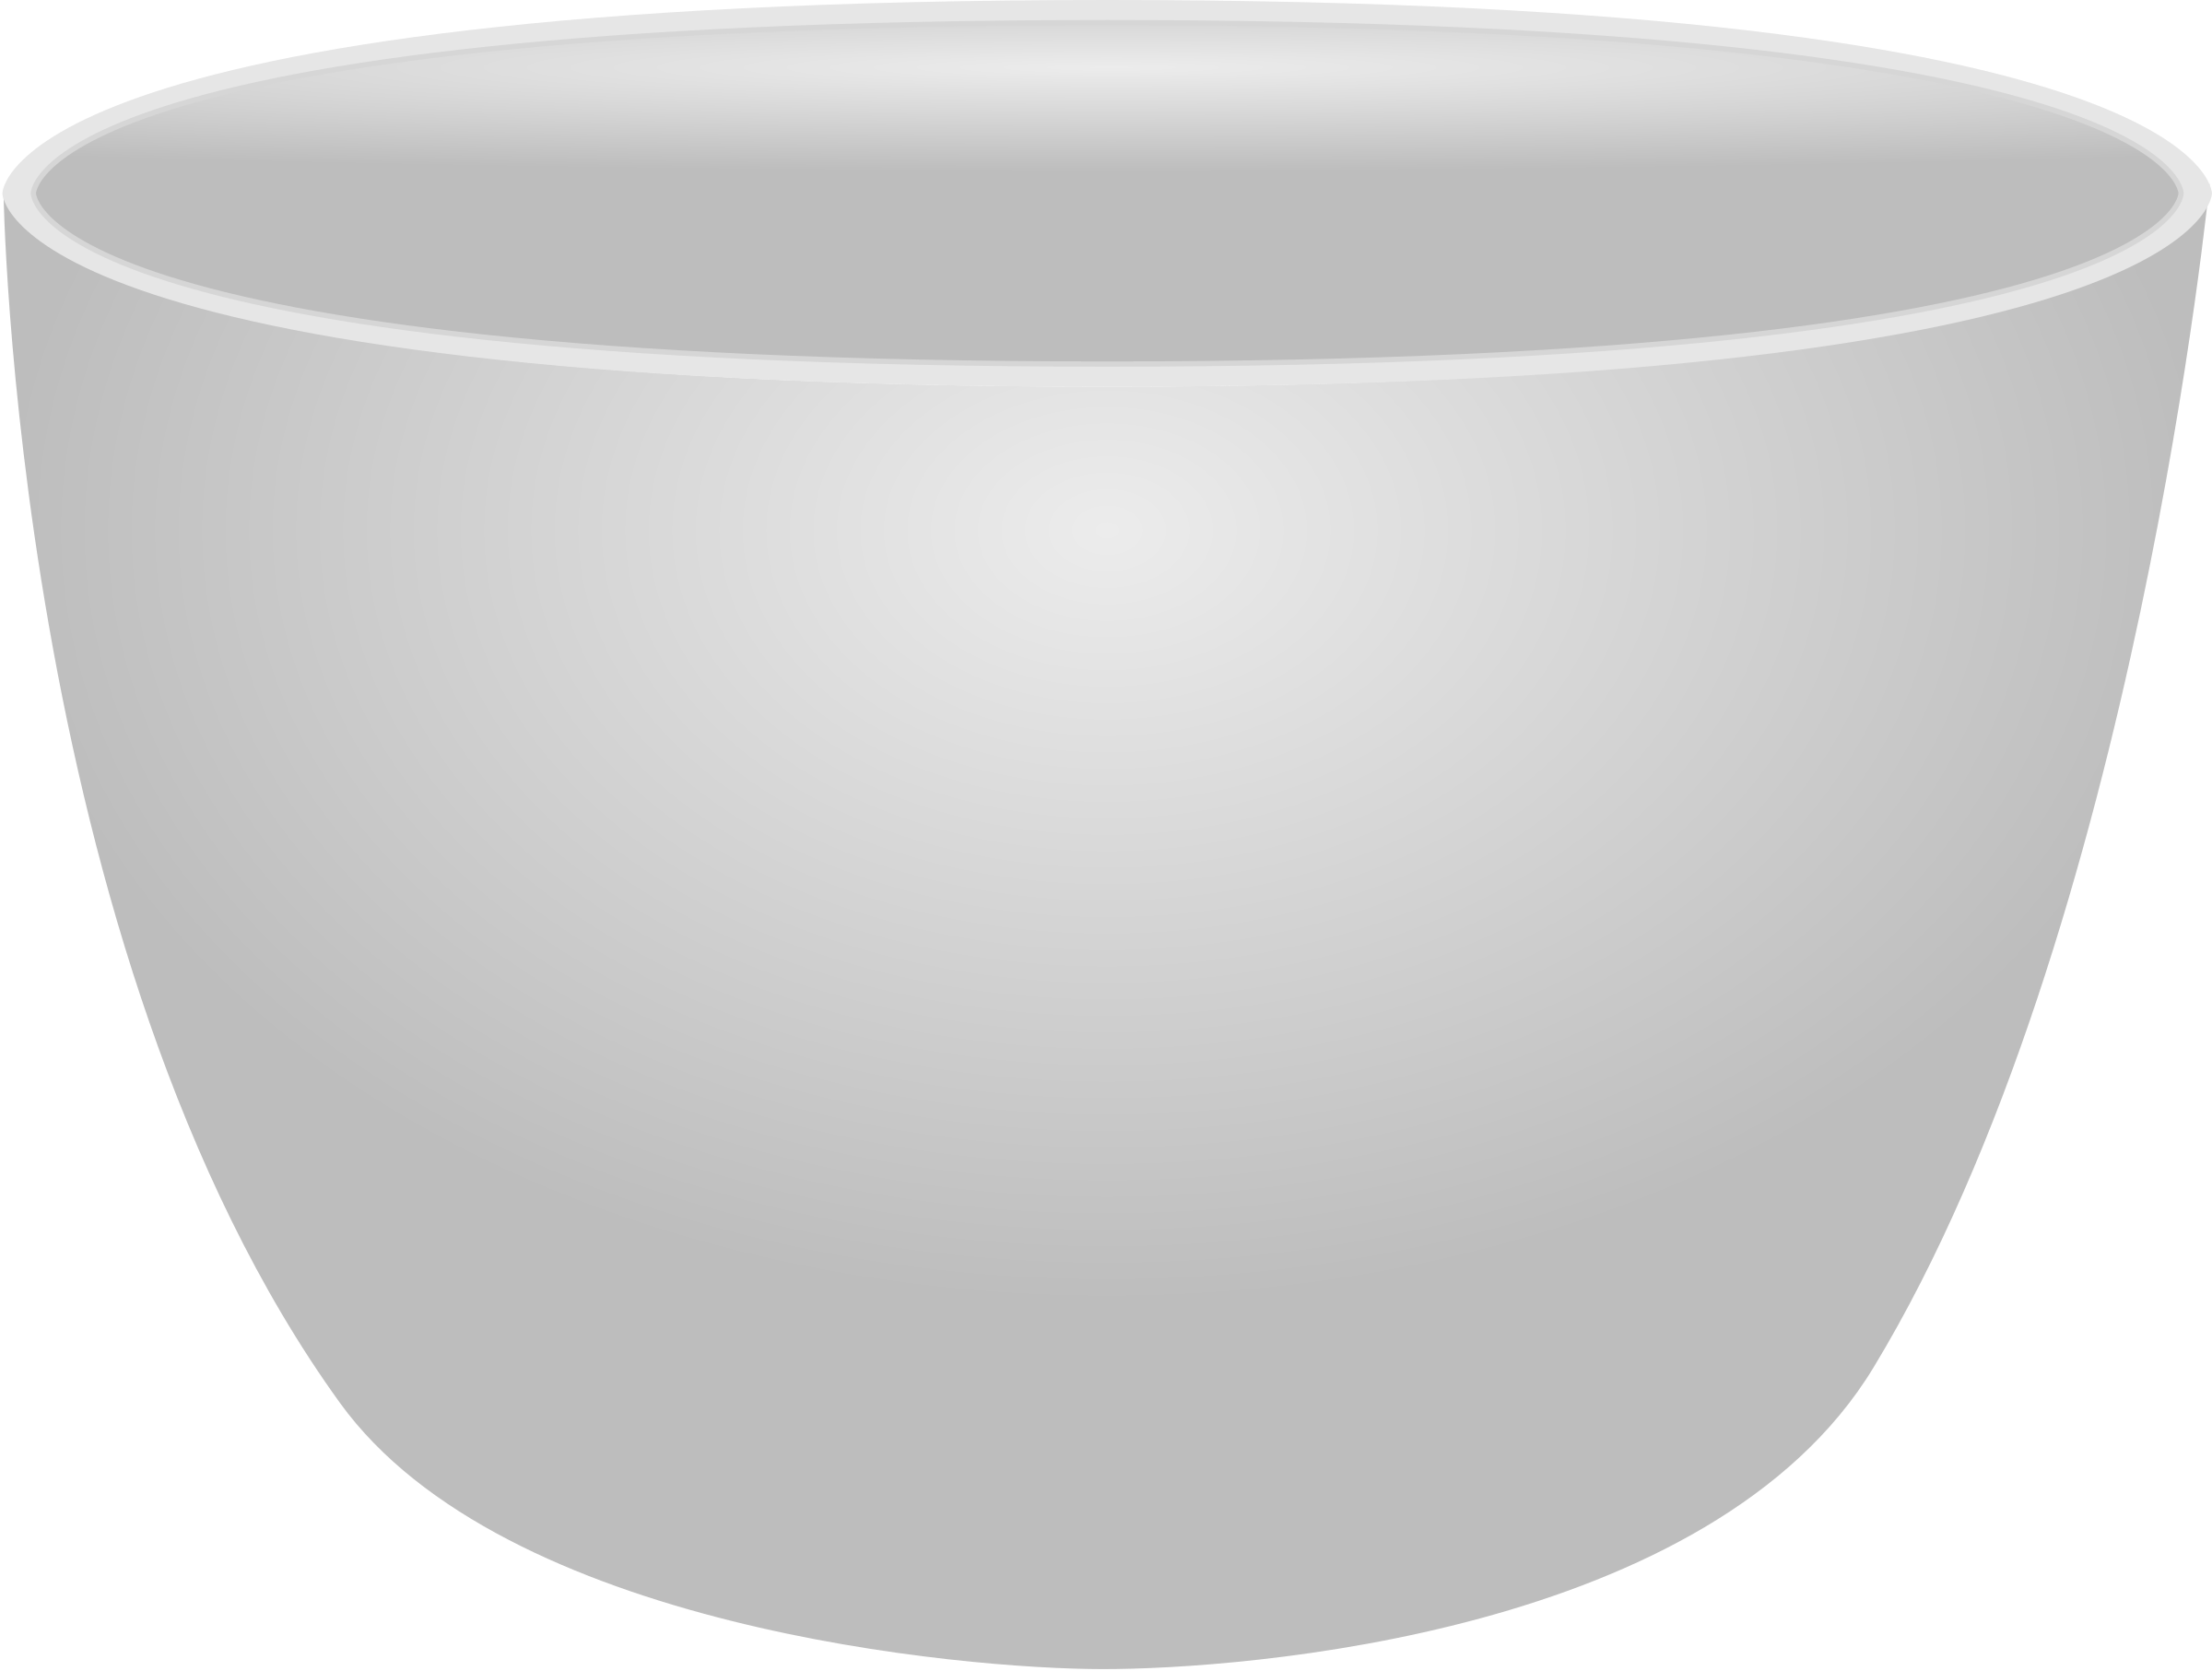 Plain Bowl by GR8DAN